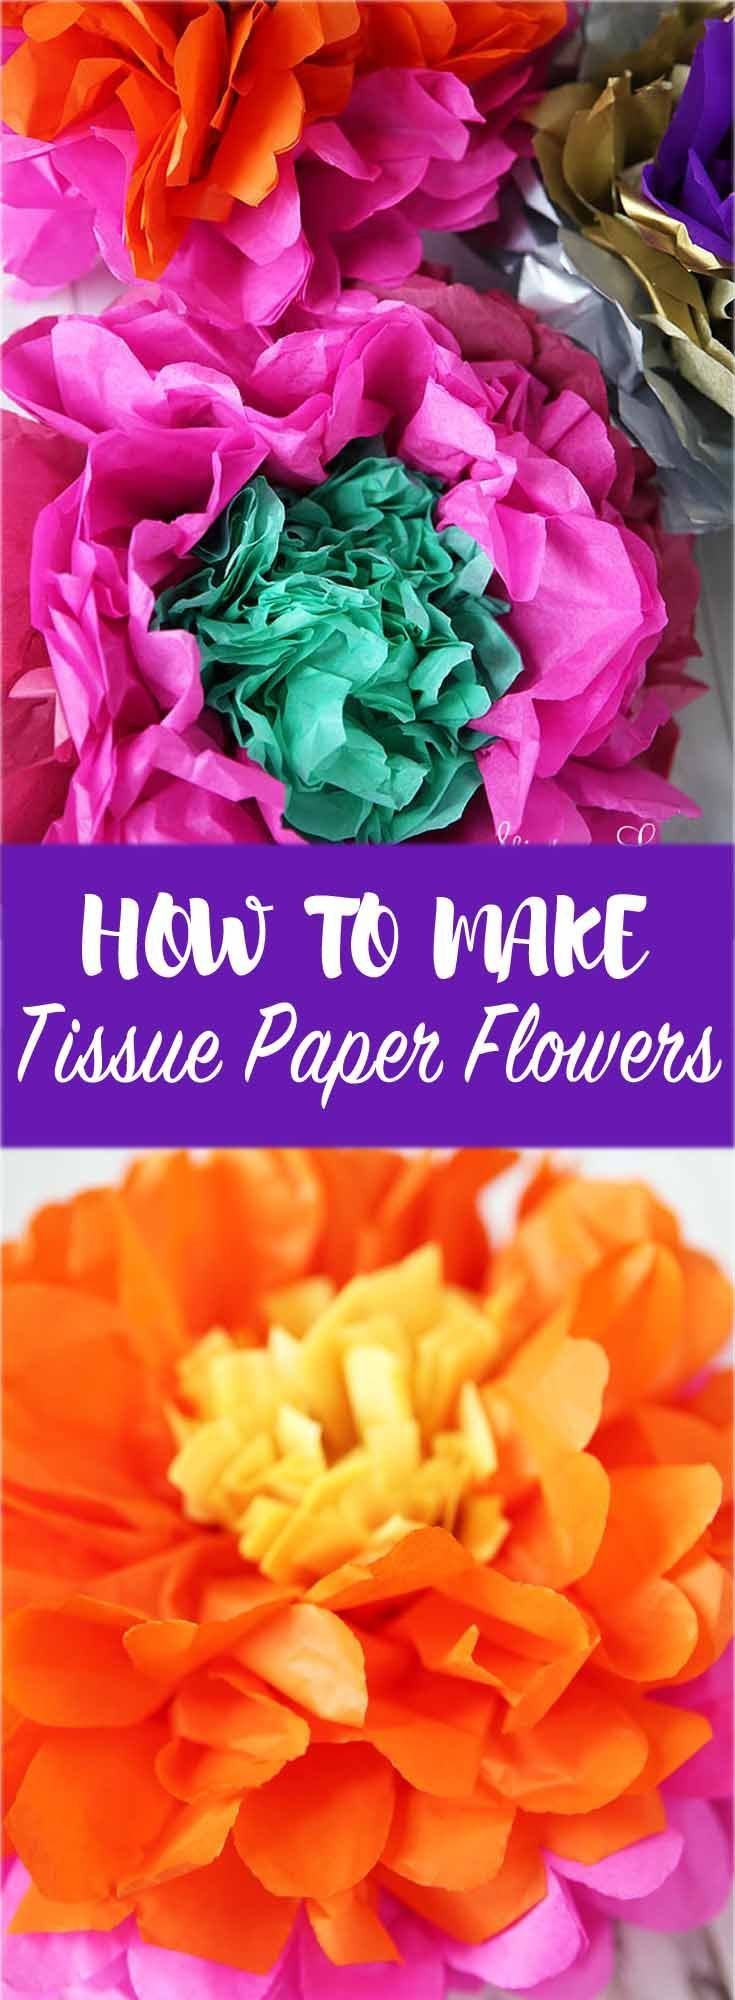 How To Make Tissue Paper Flowers Diy Pinterest Tissue Paper